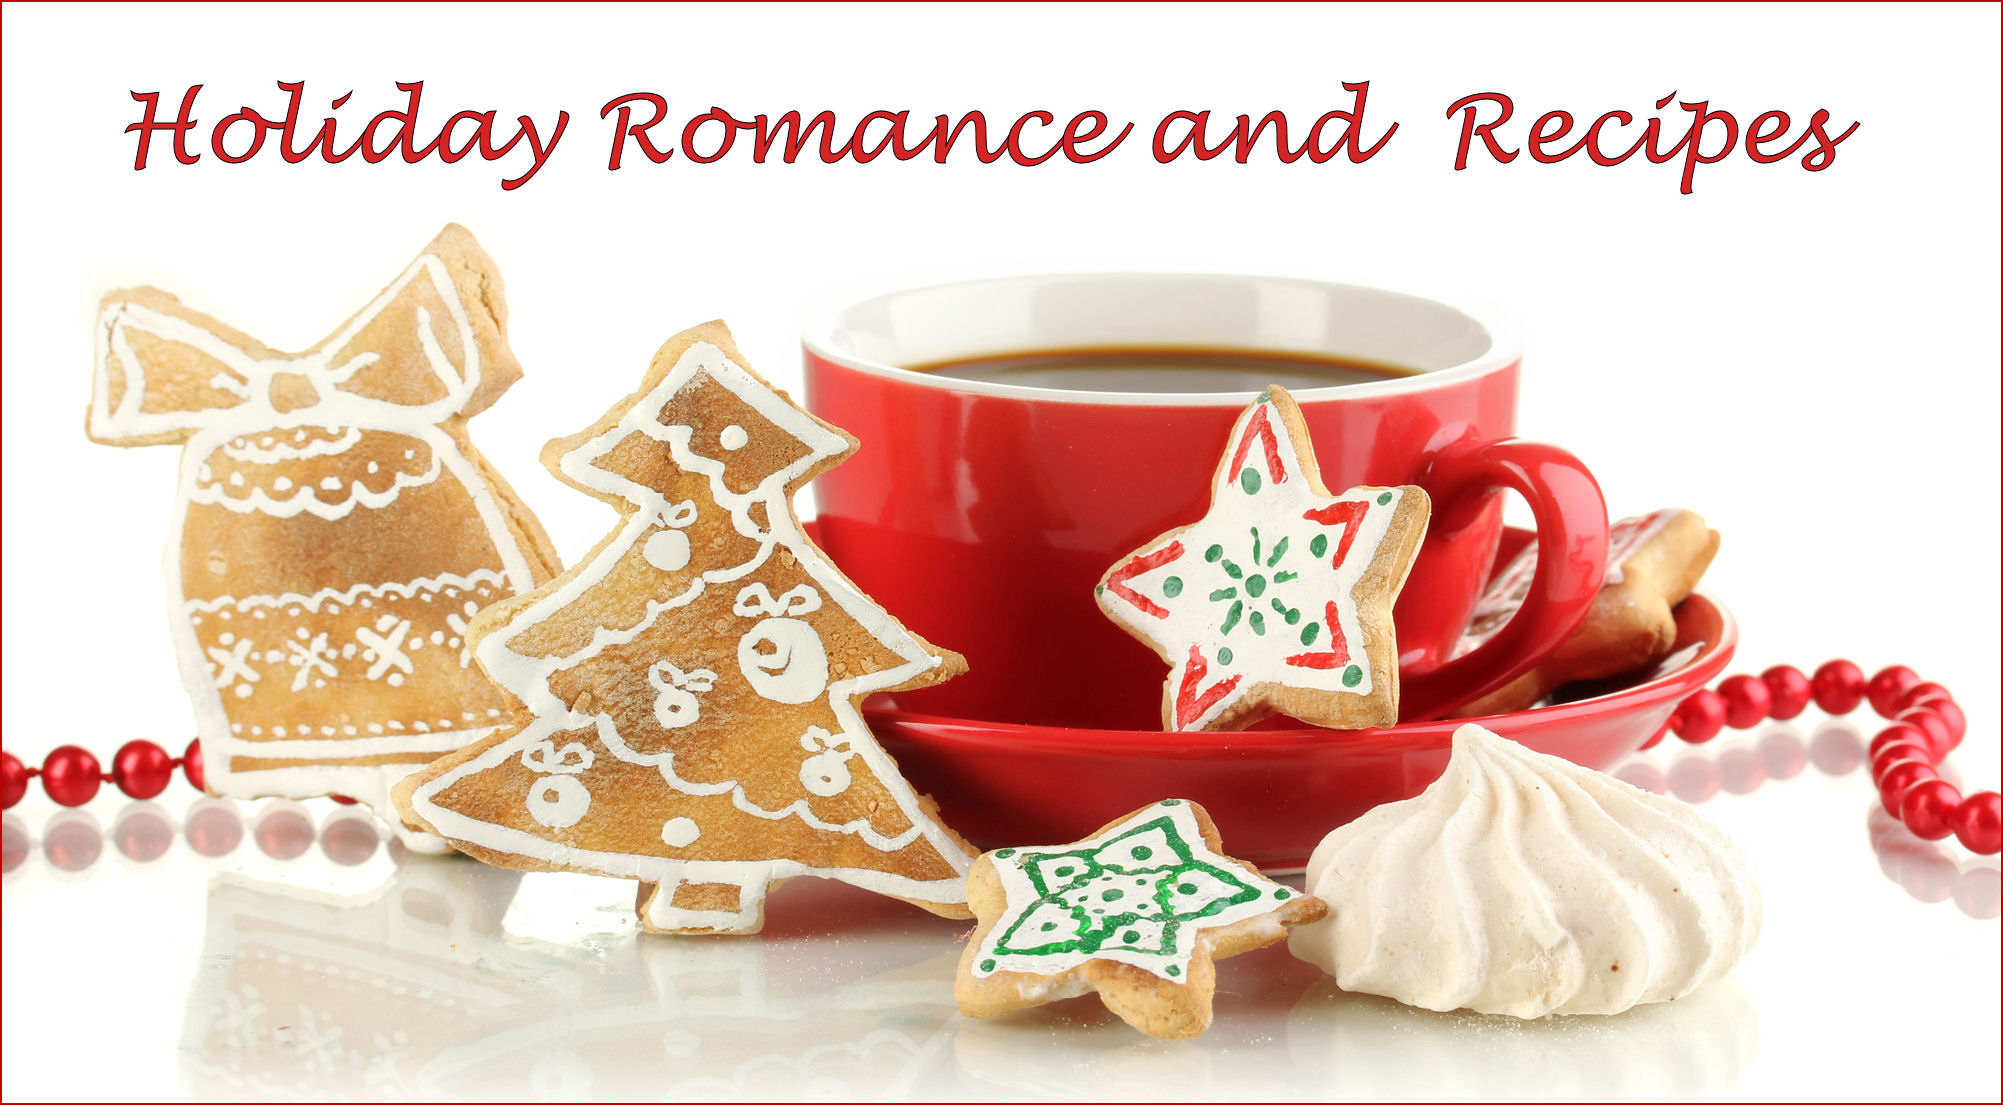 holidayromancerecipes-1